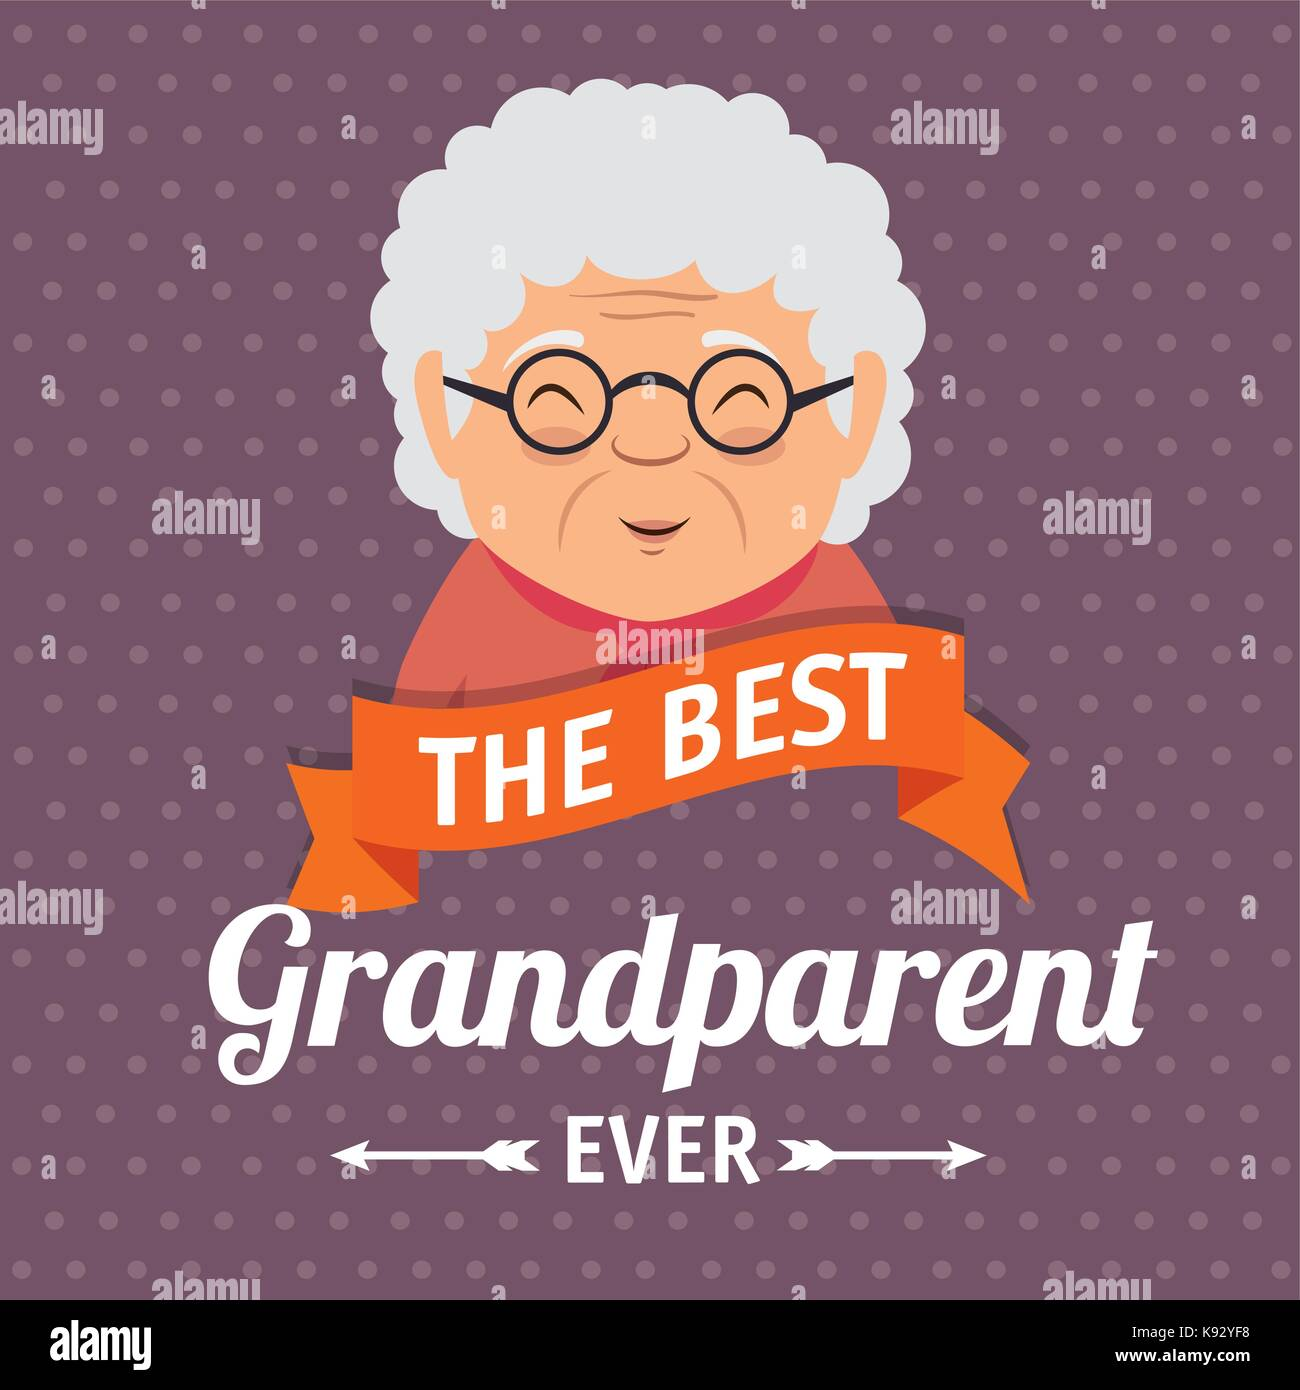 Grandparents day greeting card stock vector art illustration grandparents day greeting card m4hsunfo